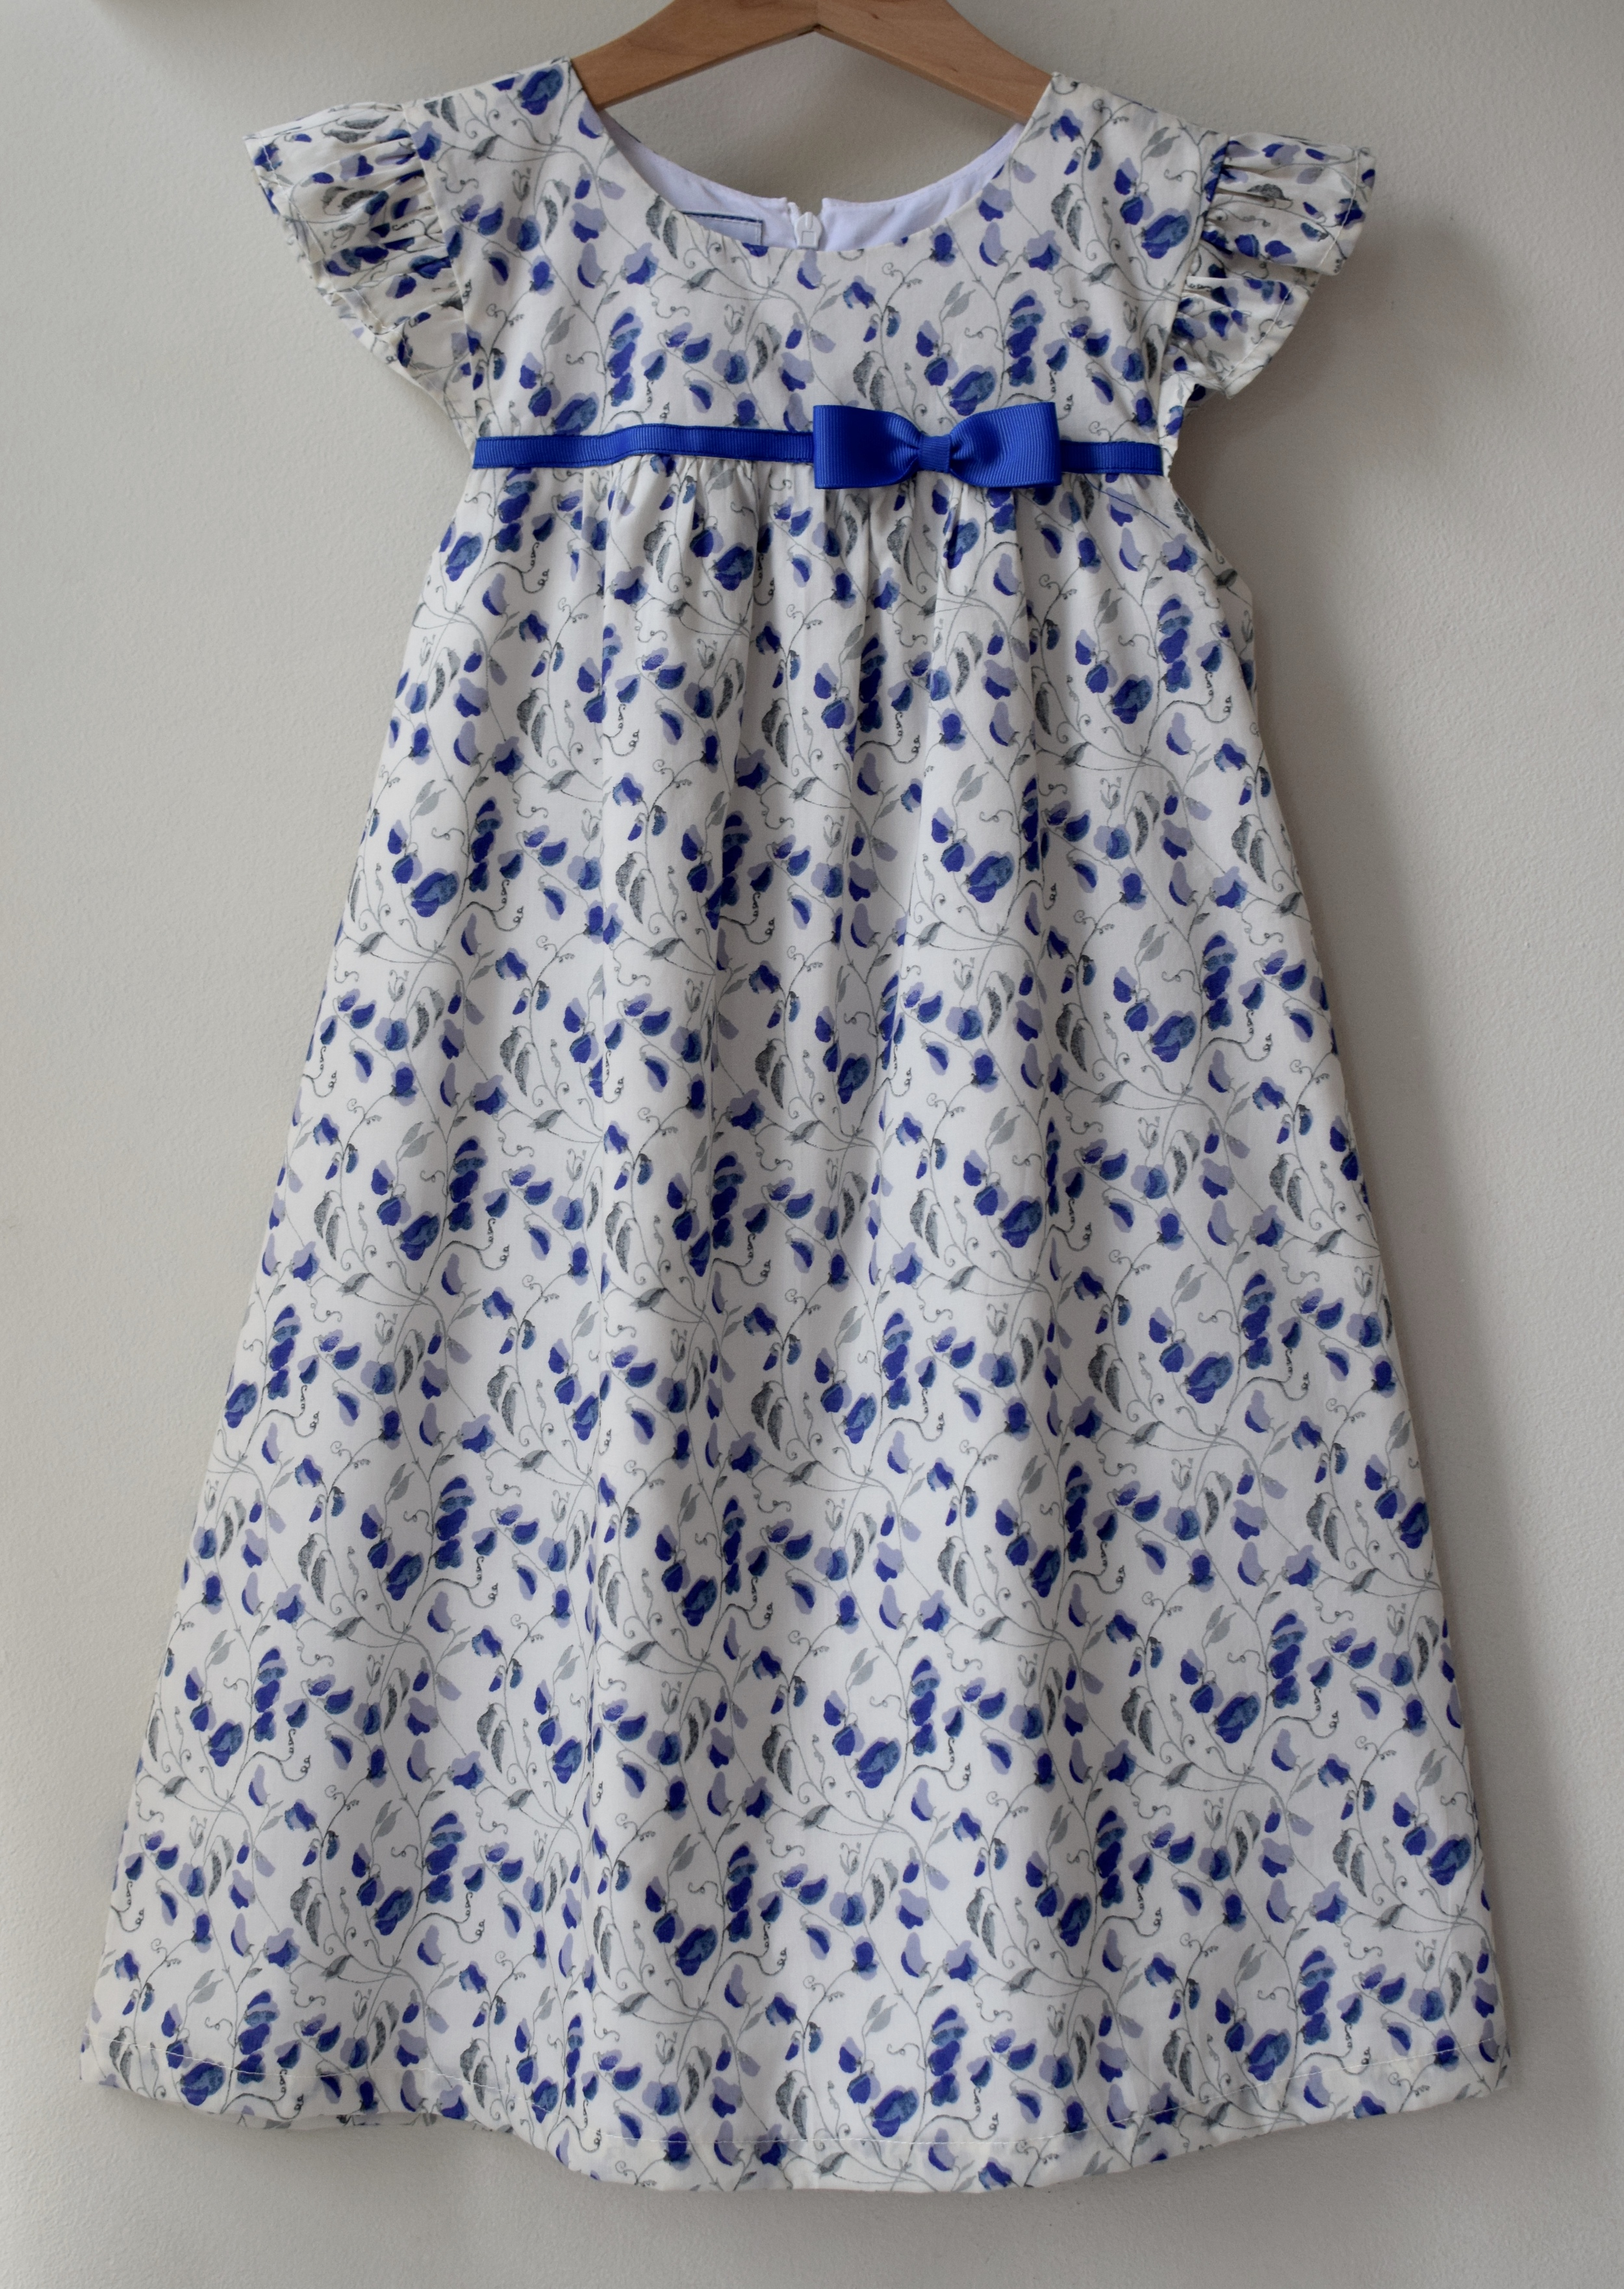 Blue sweetpea ruffle dress £43   Liberty print dress with ruffle sleeves available exclusively in size 6y. Fully lined with a concealed zip at the back, fixed contrasting blue grosgrain ribbon and round neck detail.